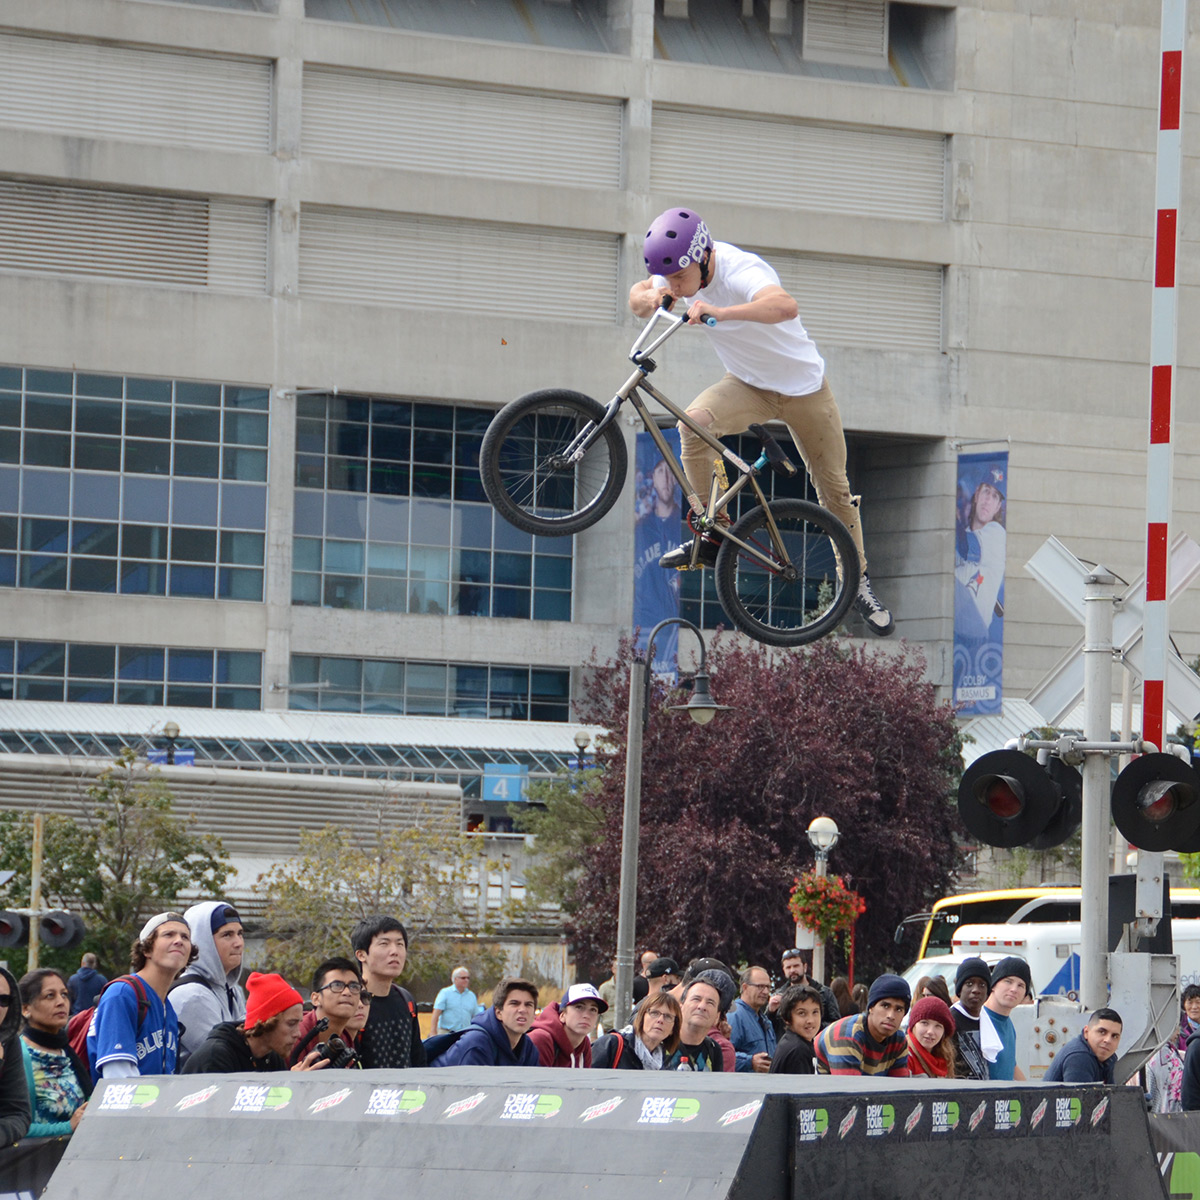 Nac Nac at BMX Dew Tour Am Series in Toronto